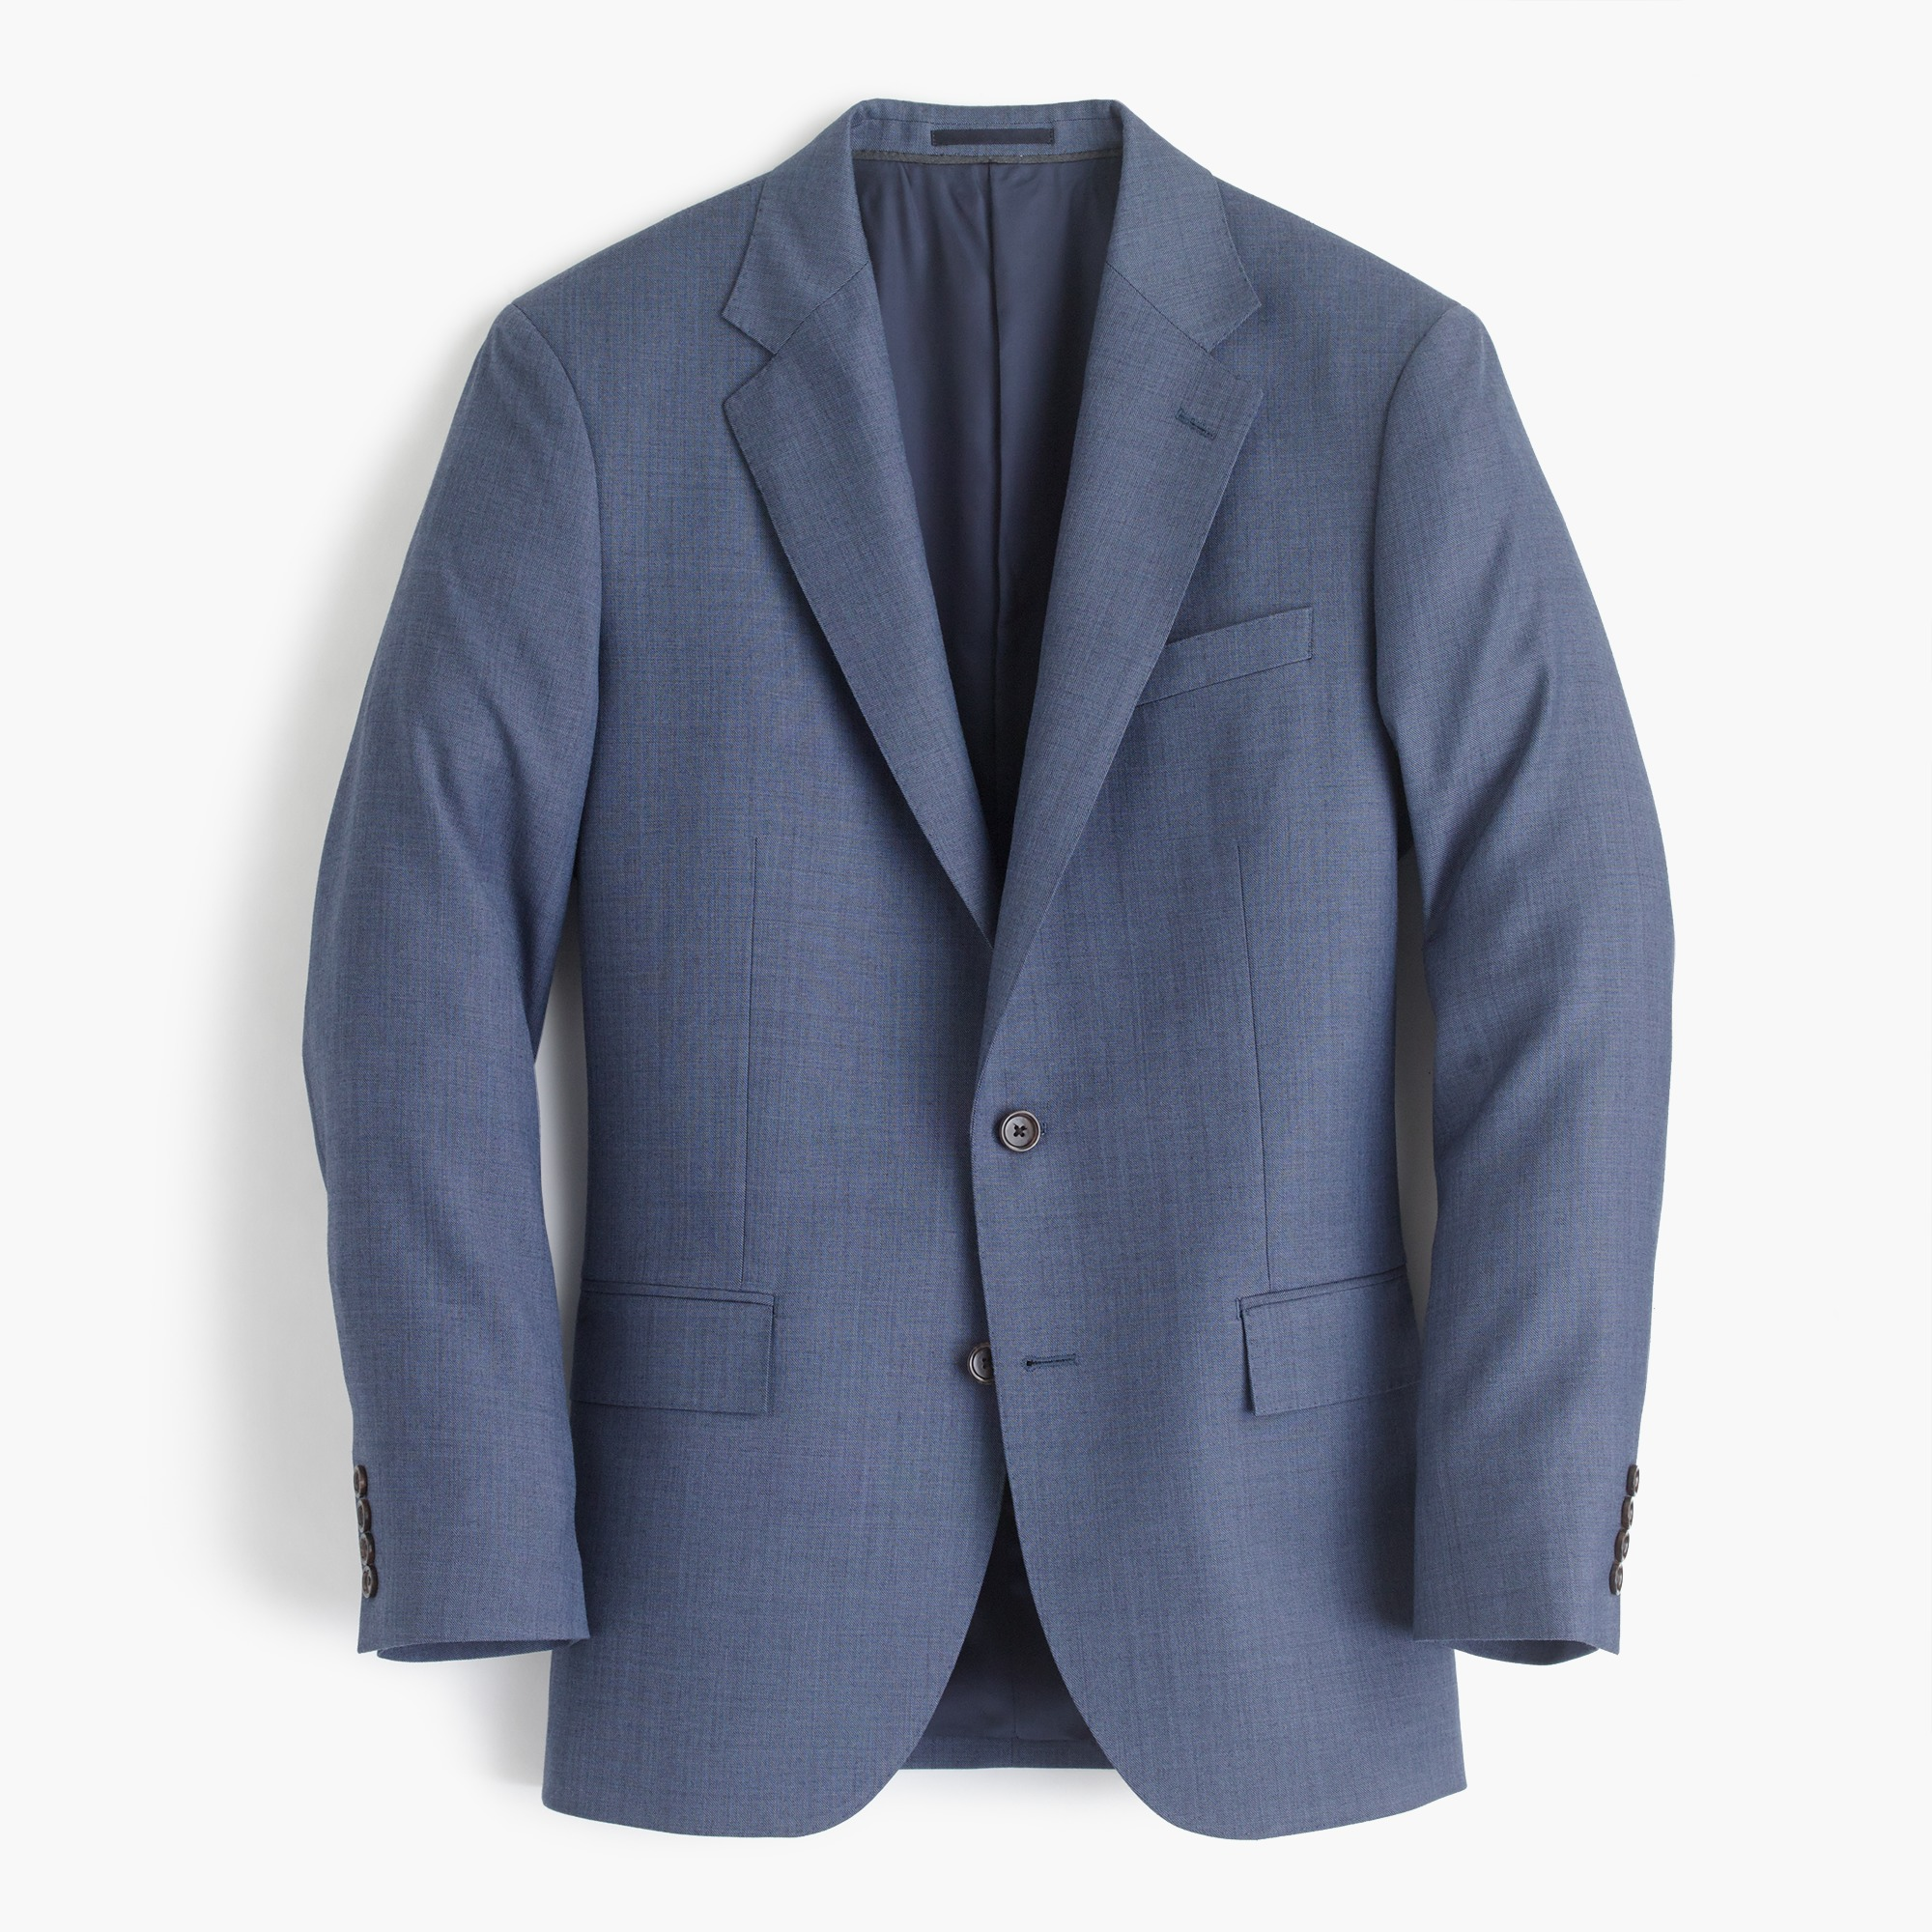 Image 2 for Ludlow Slim-fit wide-lapel suit jacket in Italian worsted wool